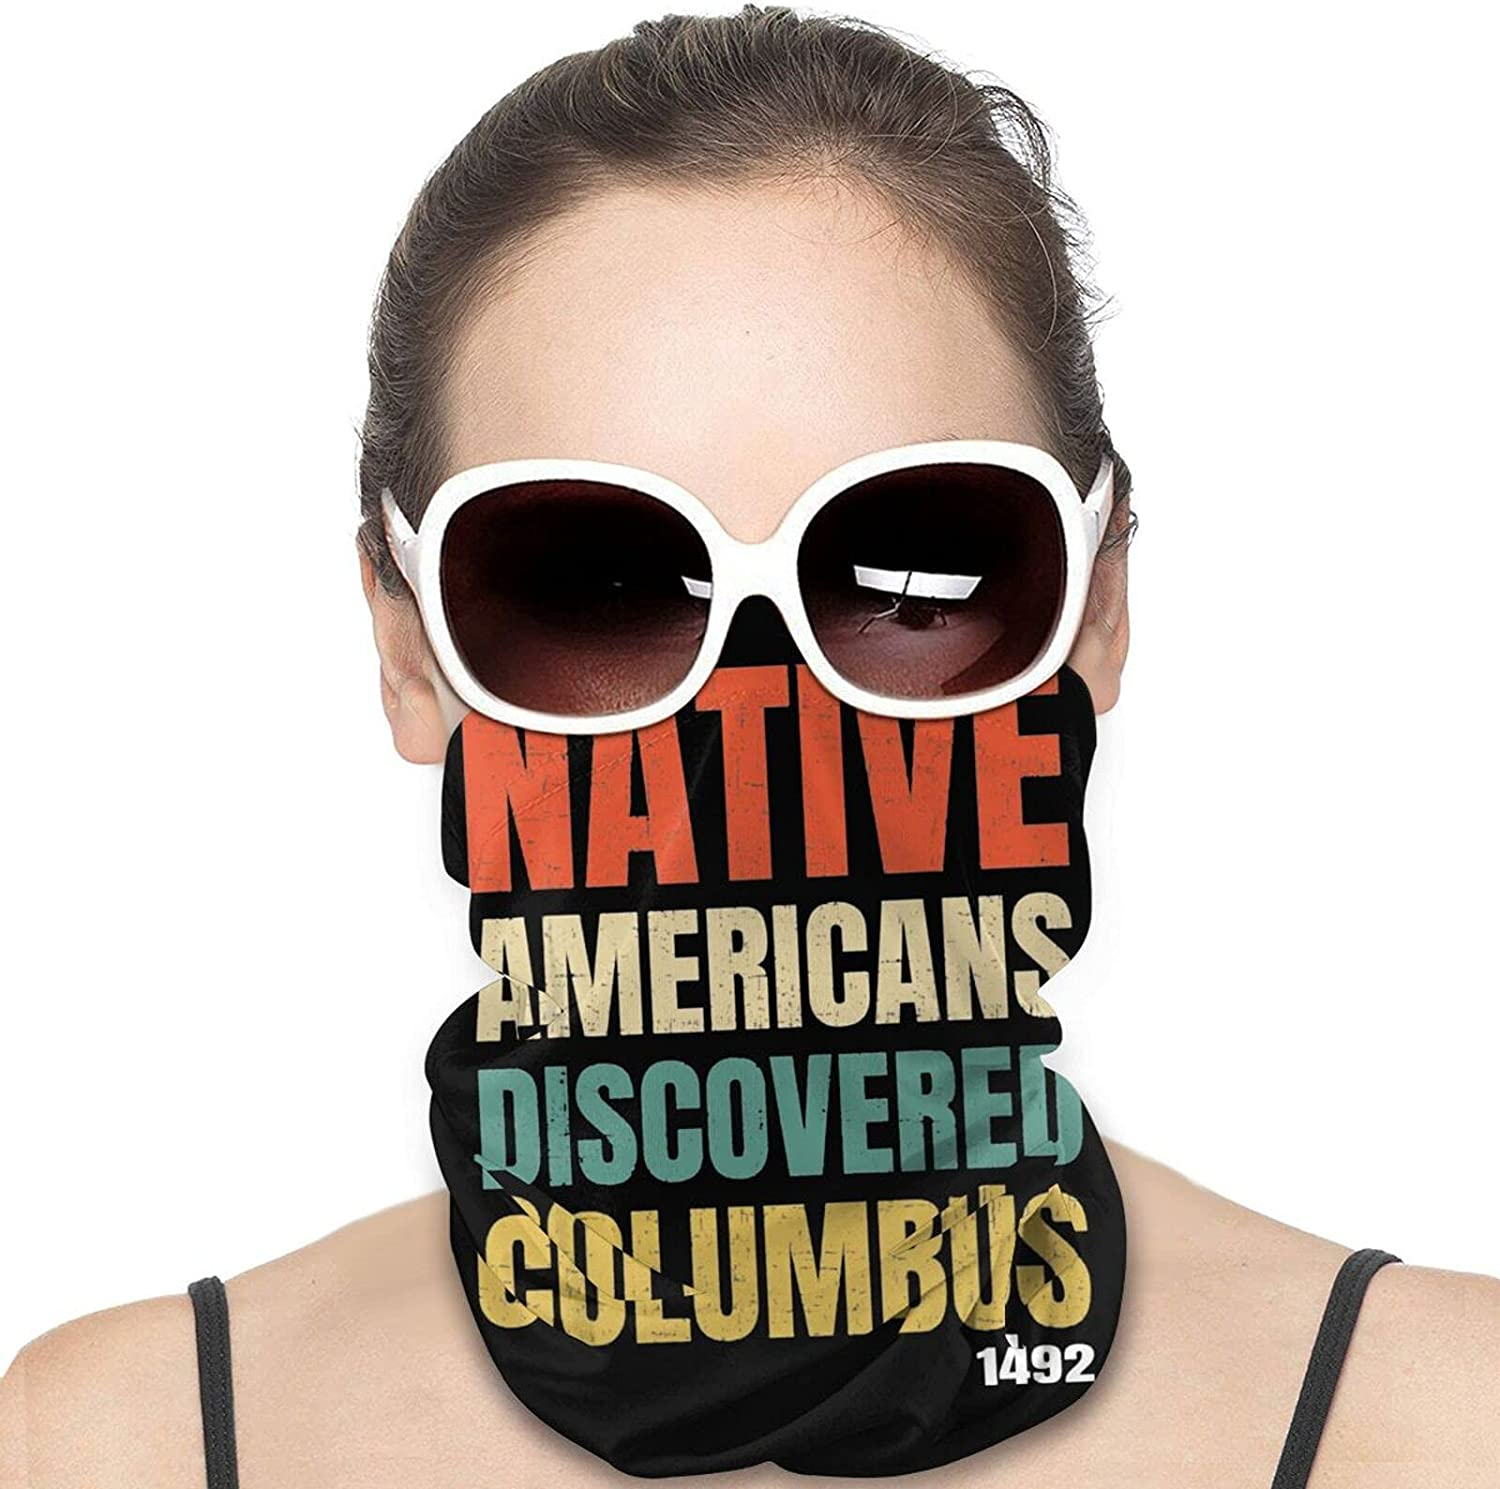 Native Americans Discovered Columbus Round Neck Gaiter Bandnas Face Cover Uv Protection Prevent bask in Ice Scarf Headbands Perfect for Motorcycle Cycling Running Festival Raves Outdoors